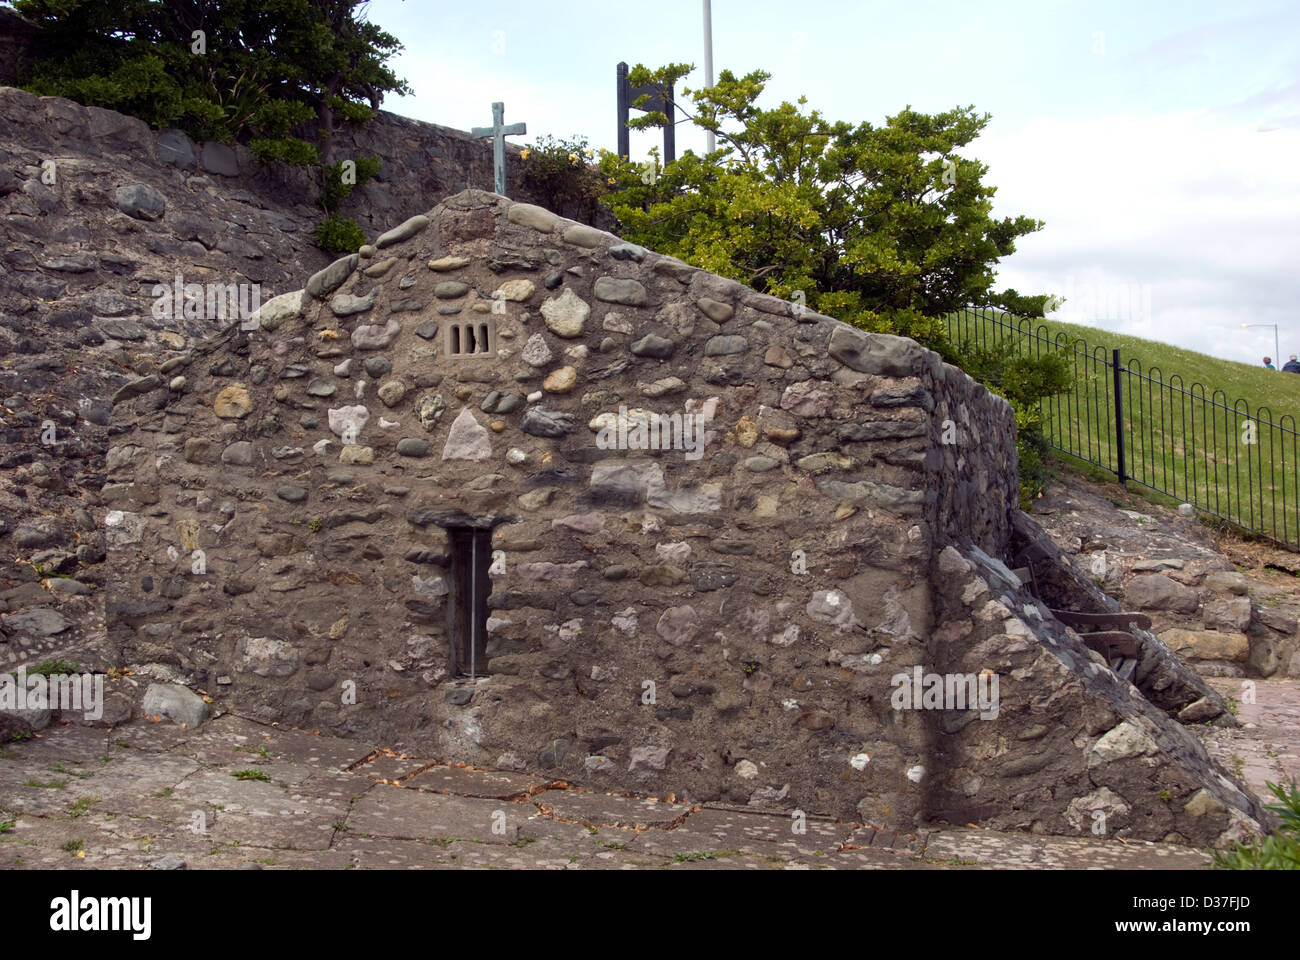 WALES; CONWY; RHOS-ON-SEA; EUCHARIST CHURCH OF ST. TRILLO - Stock Image